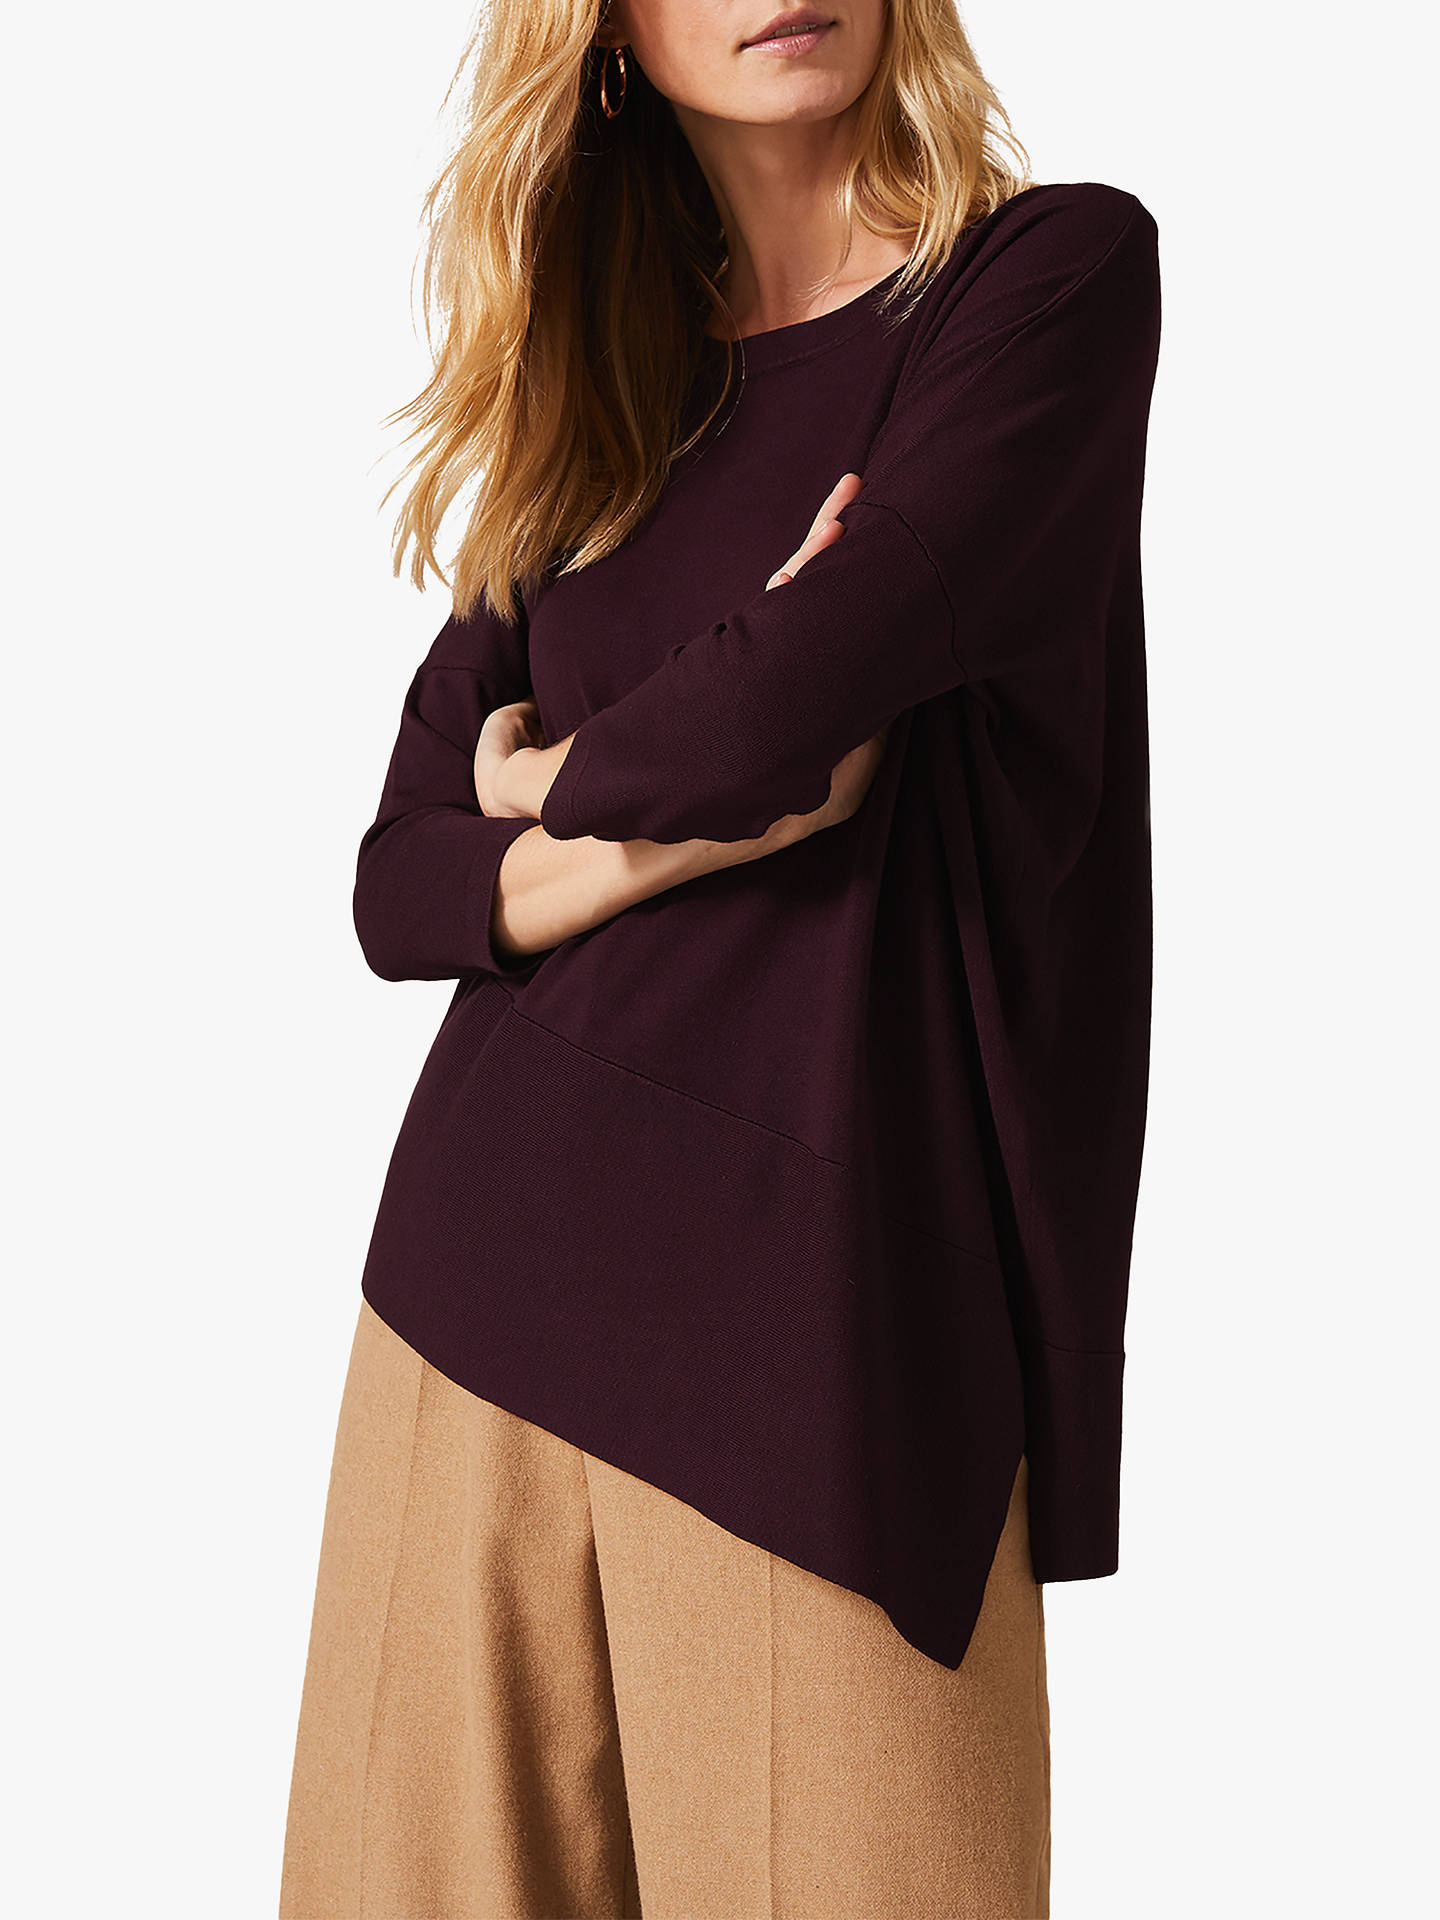 Buy Phase Eight Agatha Asymmetric Knit Top, Madiera, S Online at johnlewis.com